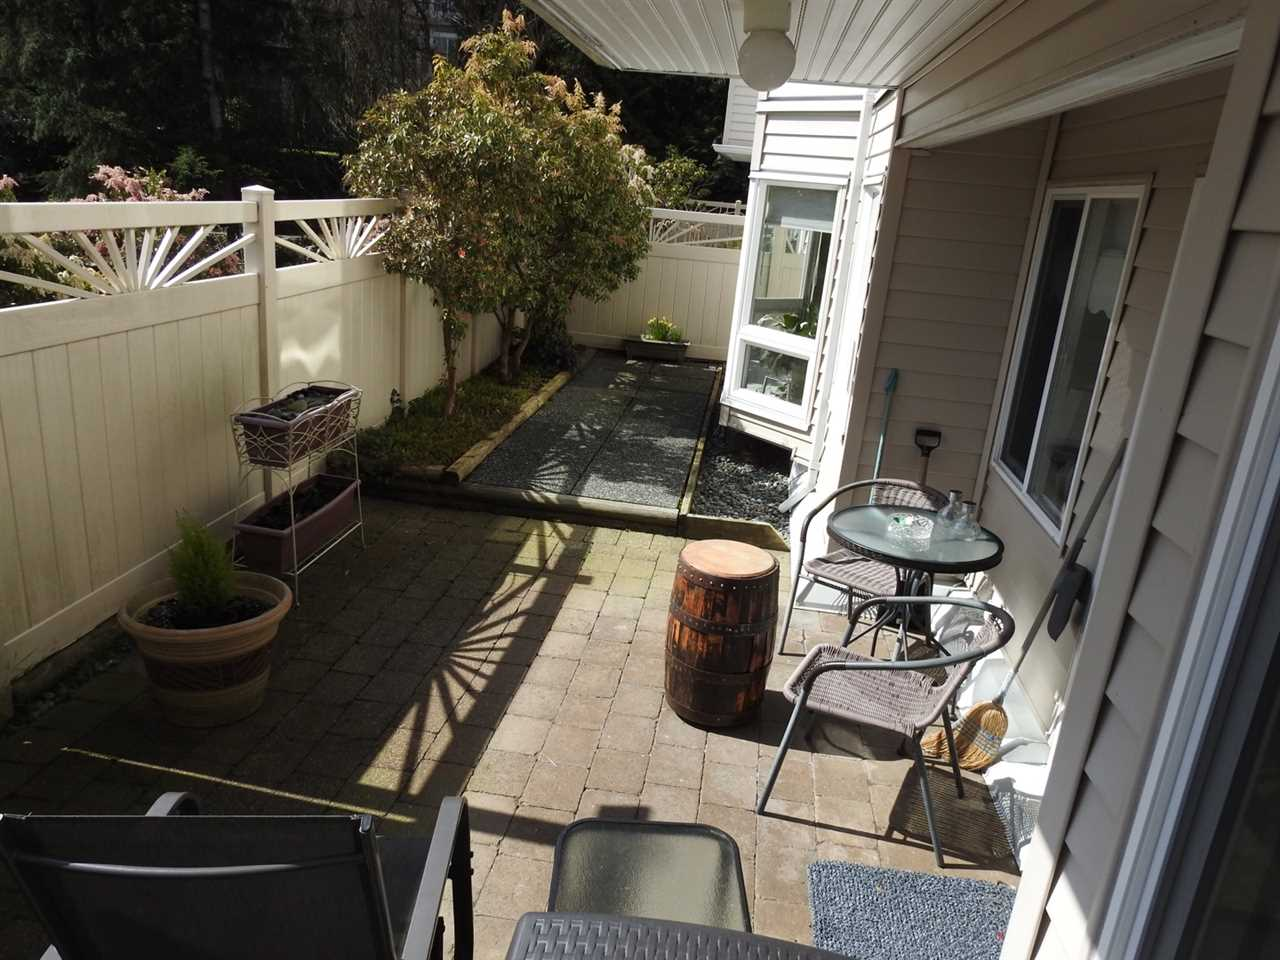 110 1155 ROSS ROAD - Lynn Valley Apartment/Condo for sale, 2 Bedrooms (R2560572) - #14